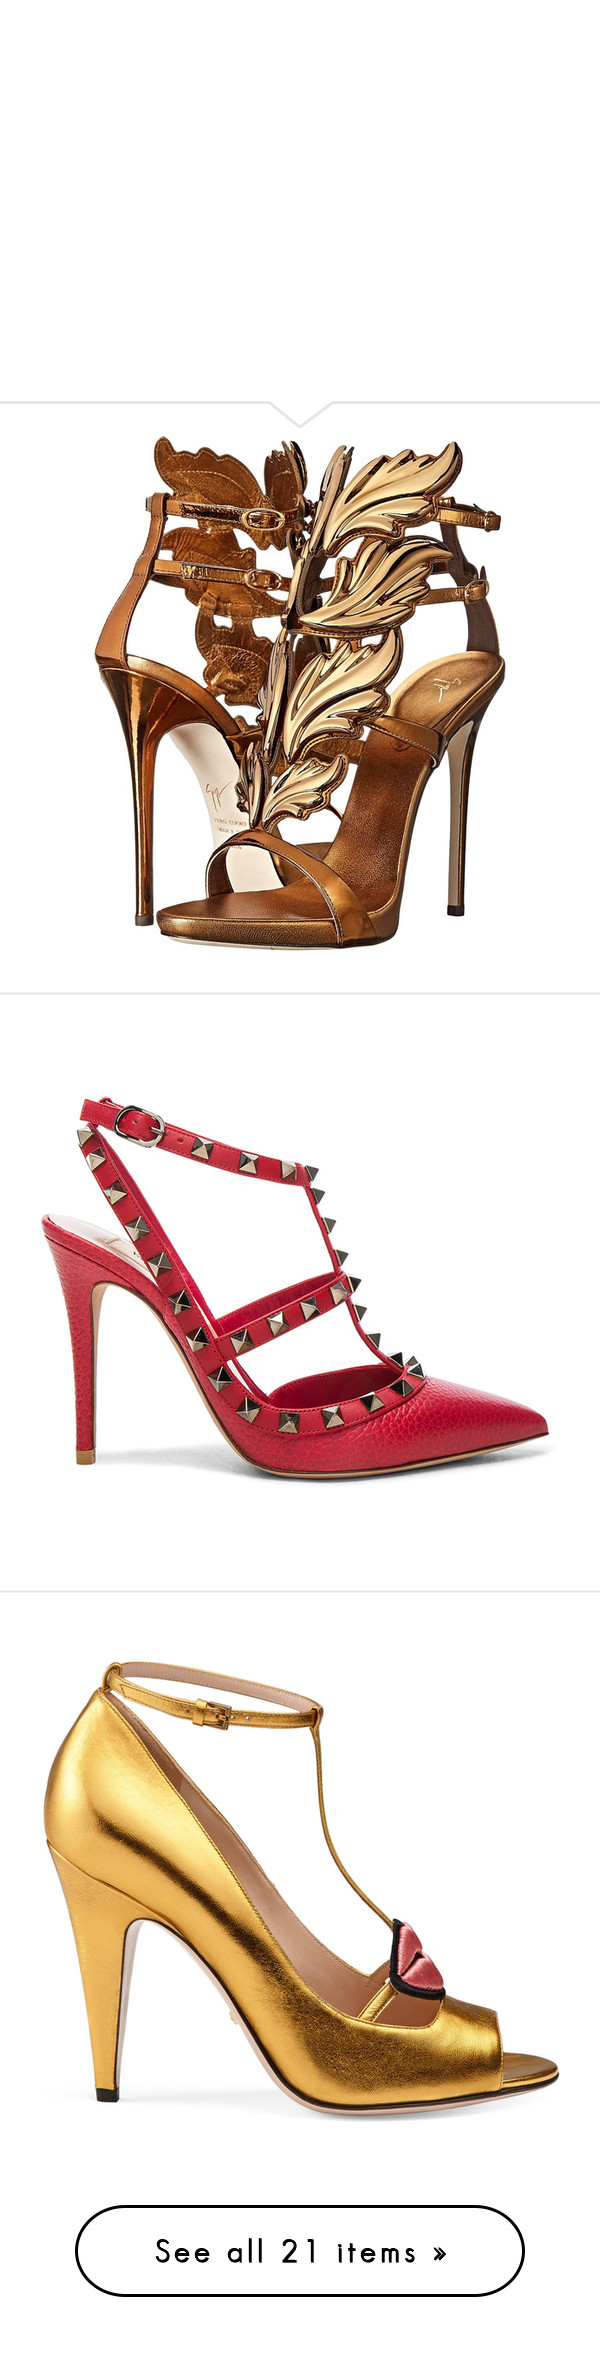 """"""""""" by ms216 ❤ liked on Polyvore featuring shoes, sandals, heels, giuseppe zanotti, shoes and boots, leather ankle strap sandals, giuseppe zanotti sandals, platform heel sandals, metallic platform sandals and open toe platform sandals"""